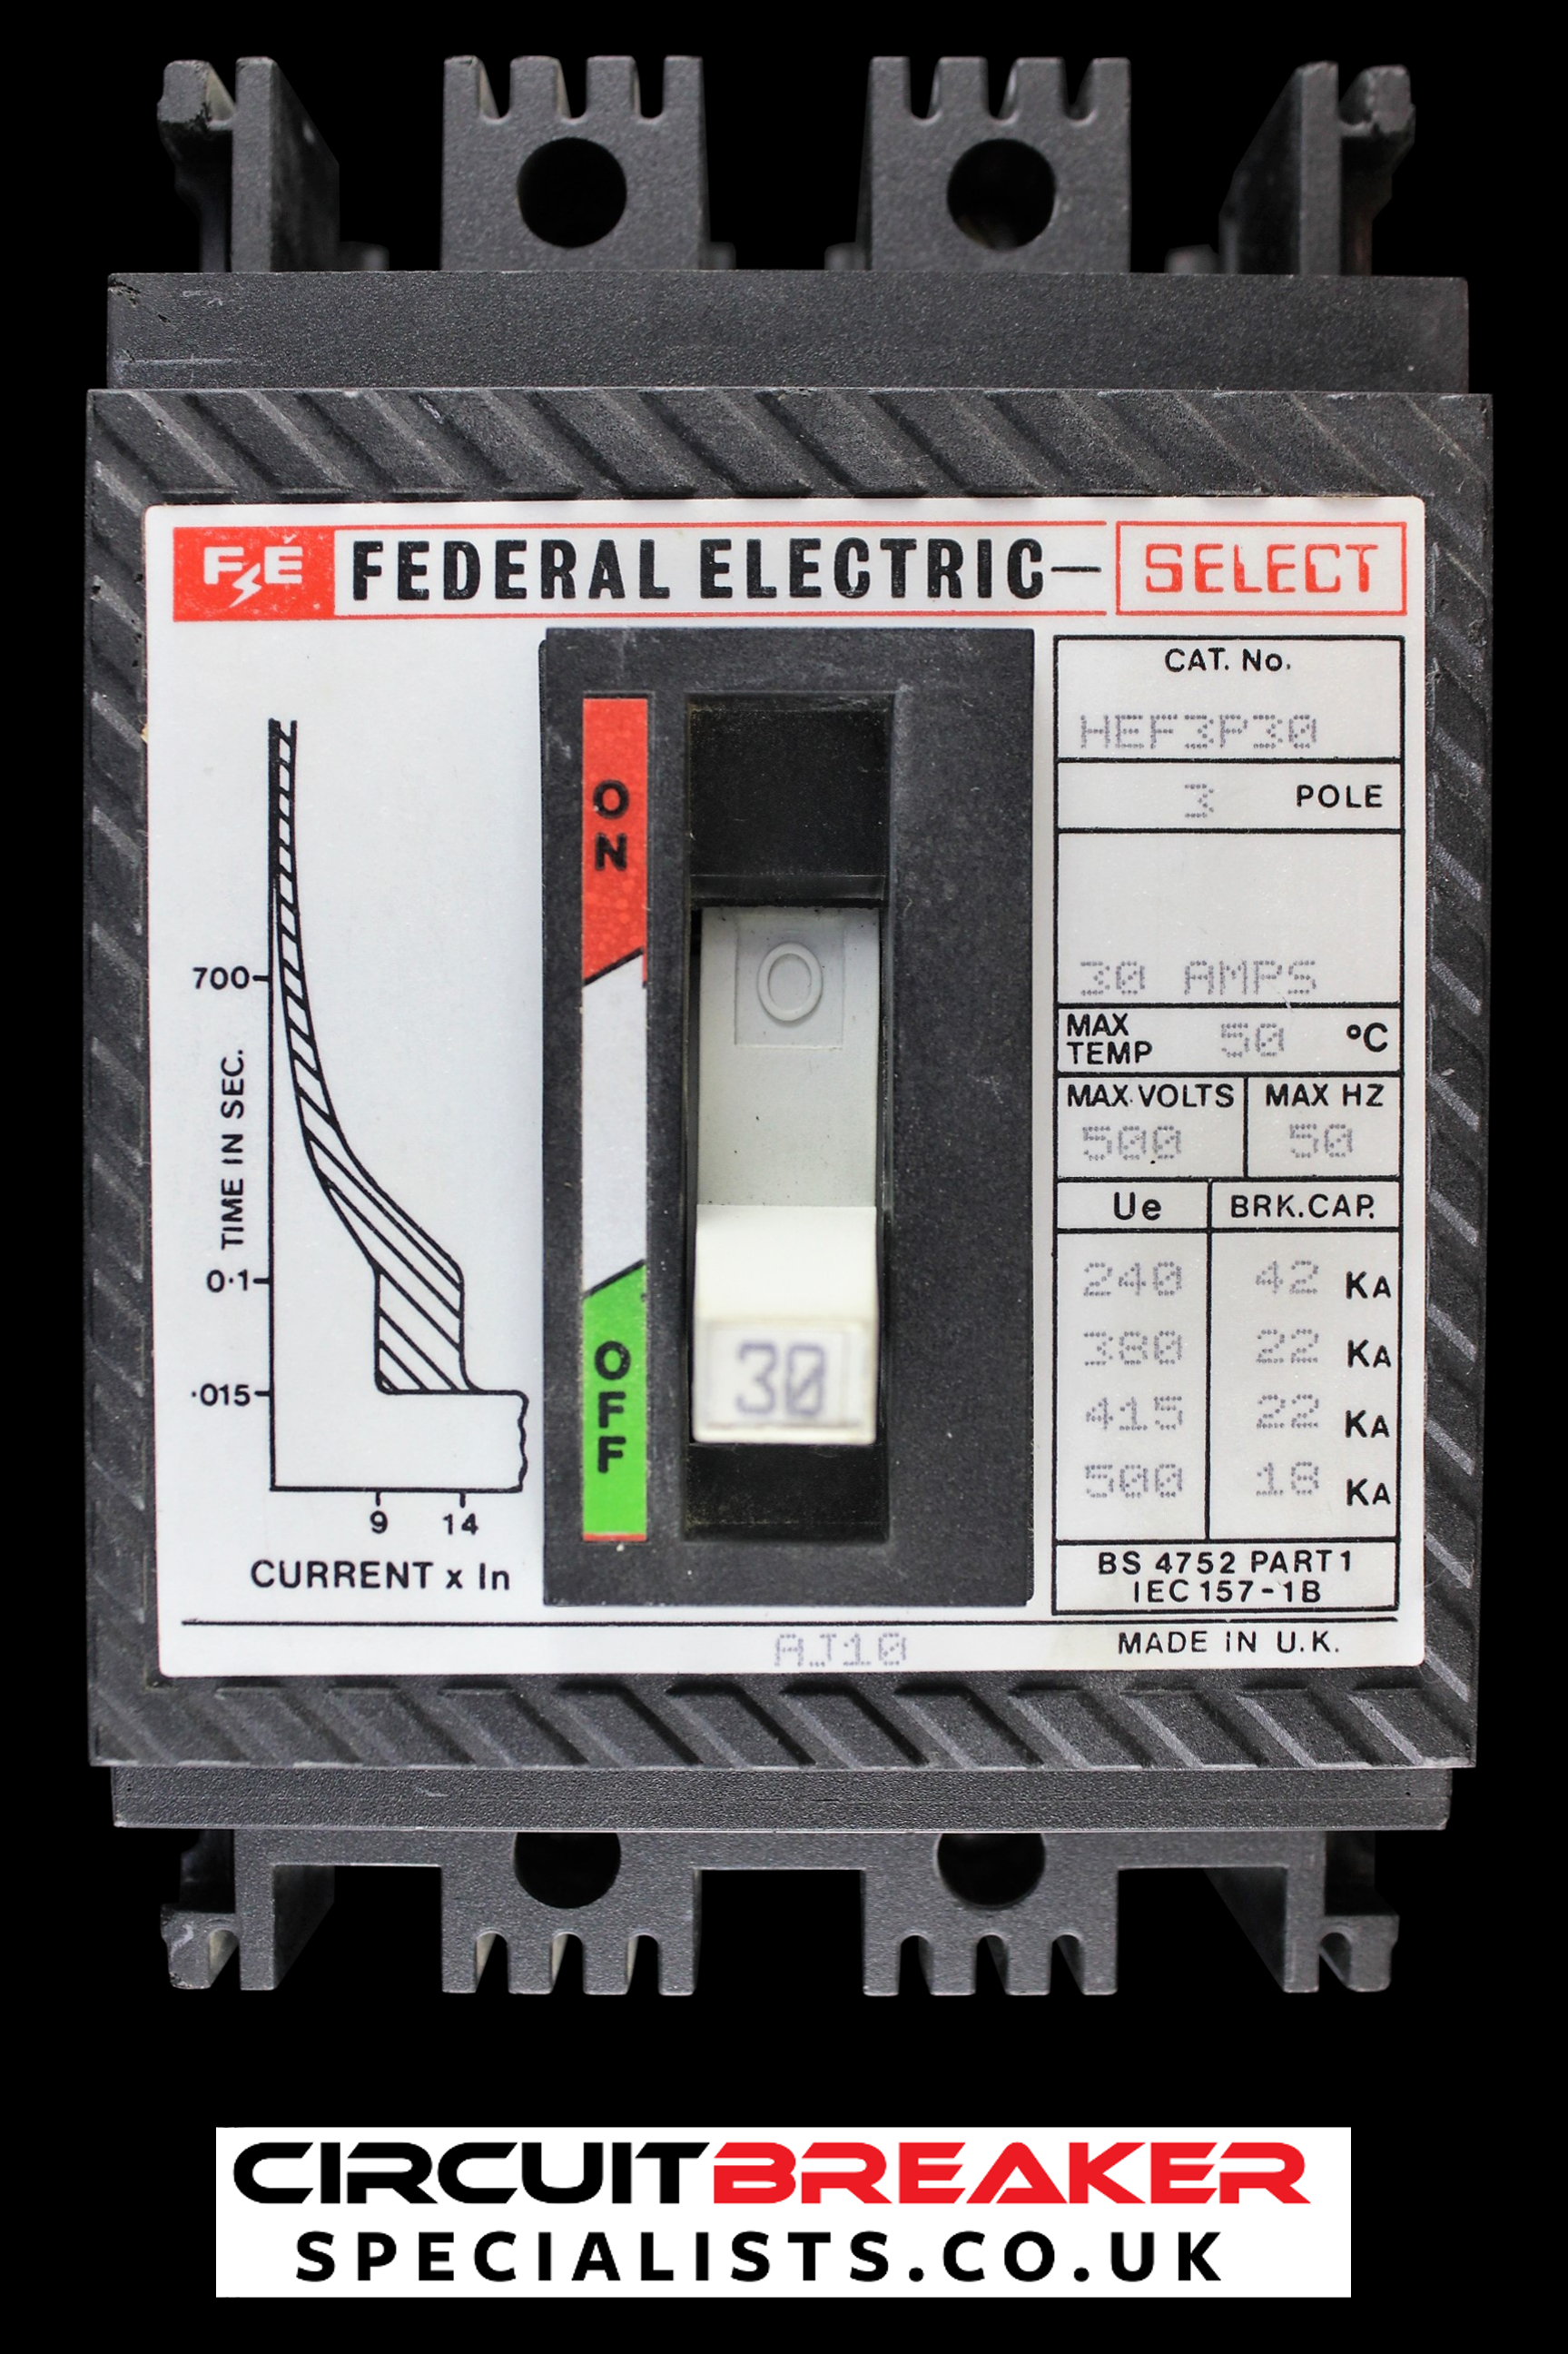 FEDERAL ELECTRIC 30 AMP 22 kA TRIPLE POLE MCCB HEF3P30 SELECT